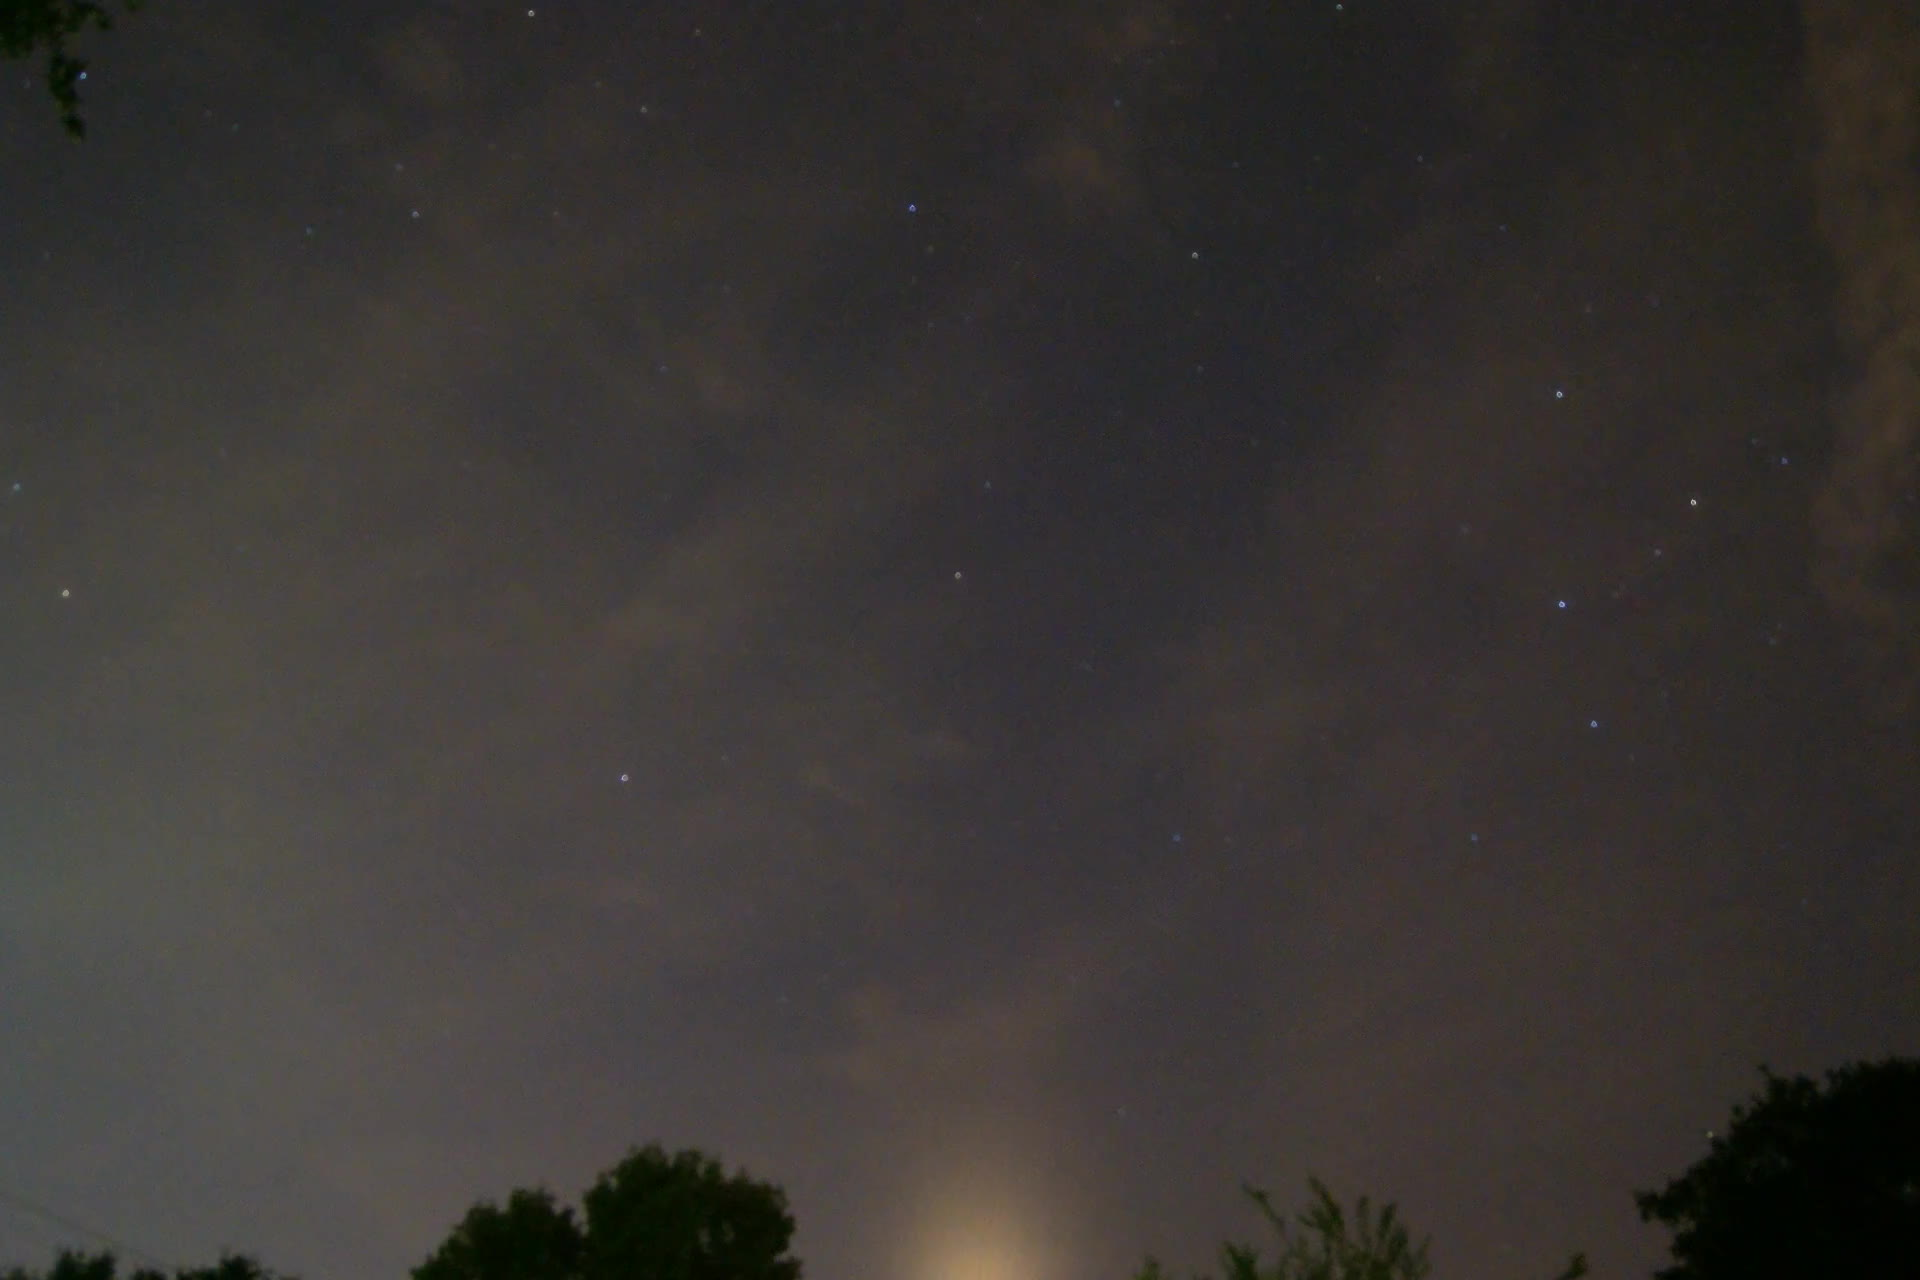 astrophotography, Night Sky Time Lapse 2016-09-29 GIFs